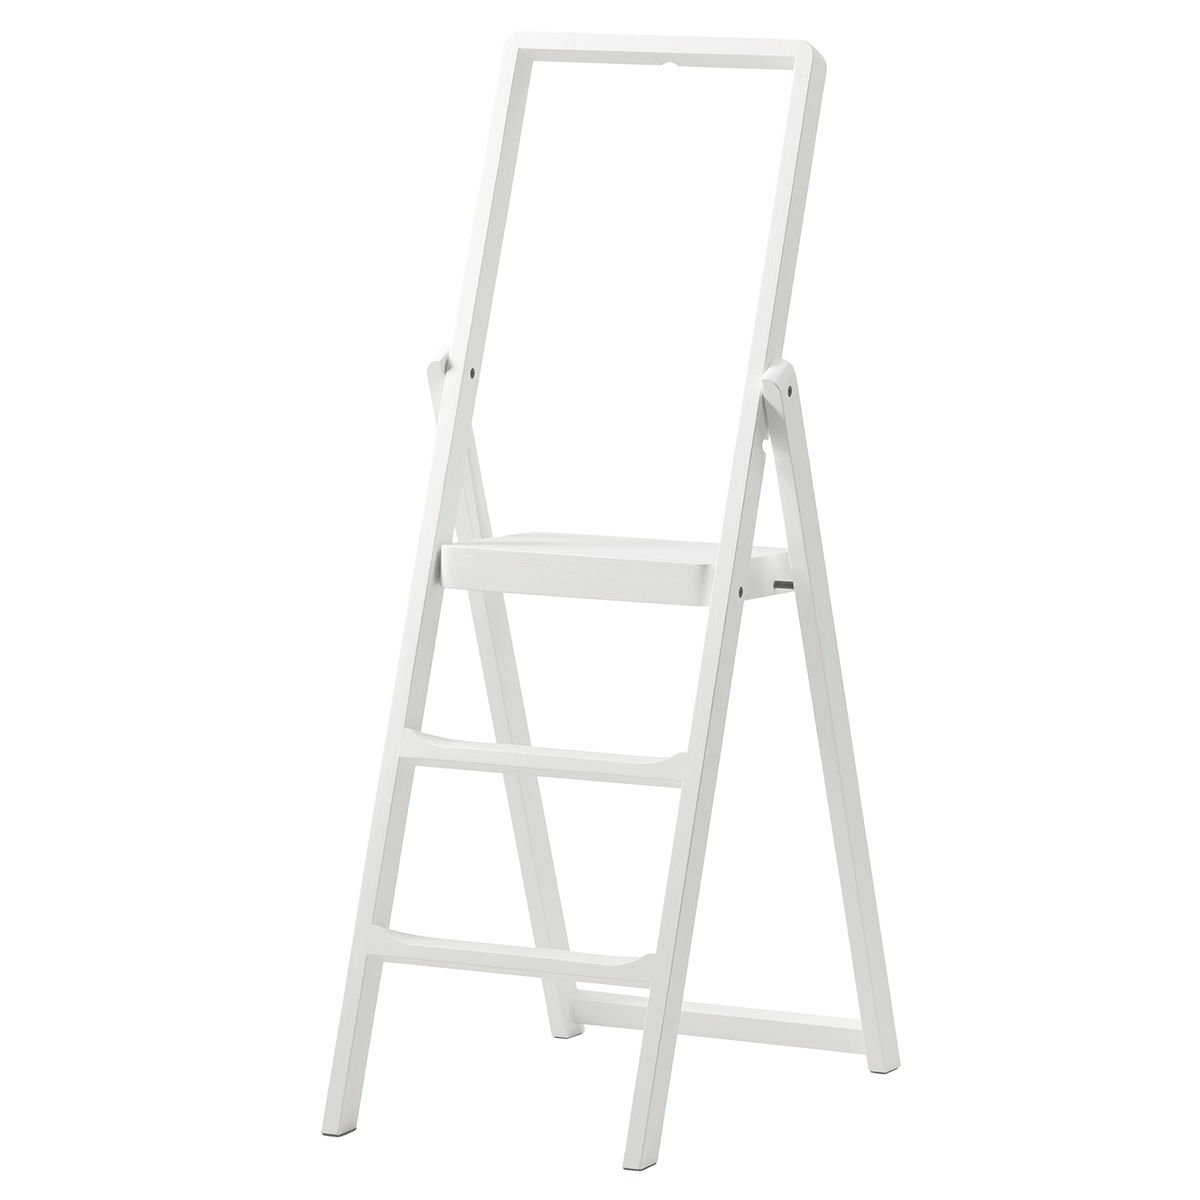 Design House Stockholm S Step Ladder Designed By Karl Malmvall Is So Beautiful That There Is No Need To Hide It After U In 2020 Step Ladders House Design White Stain